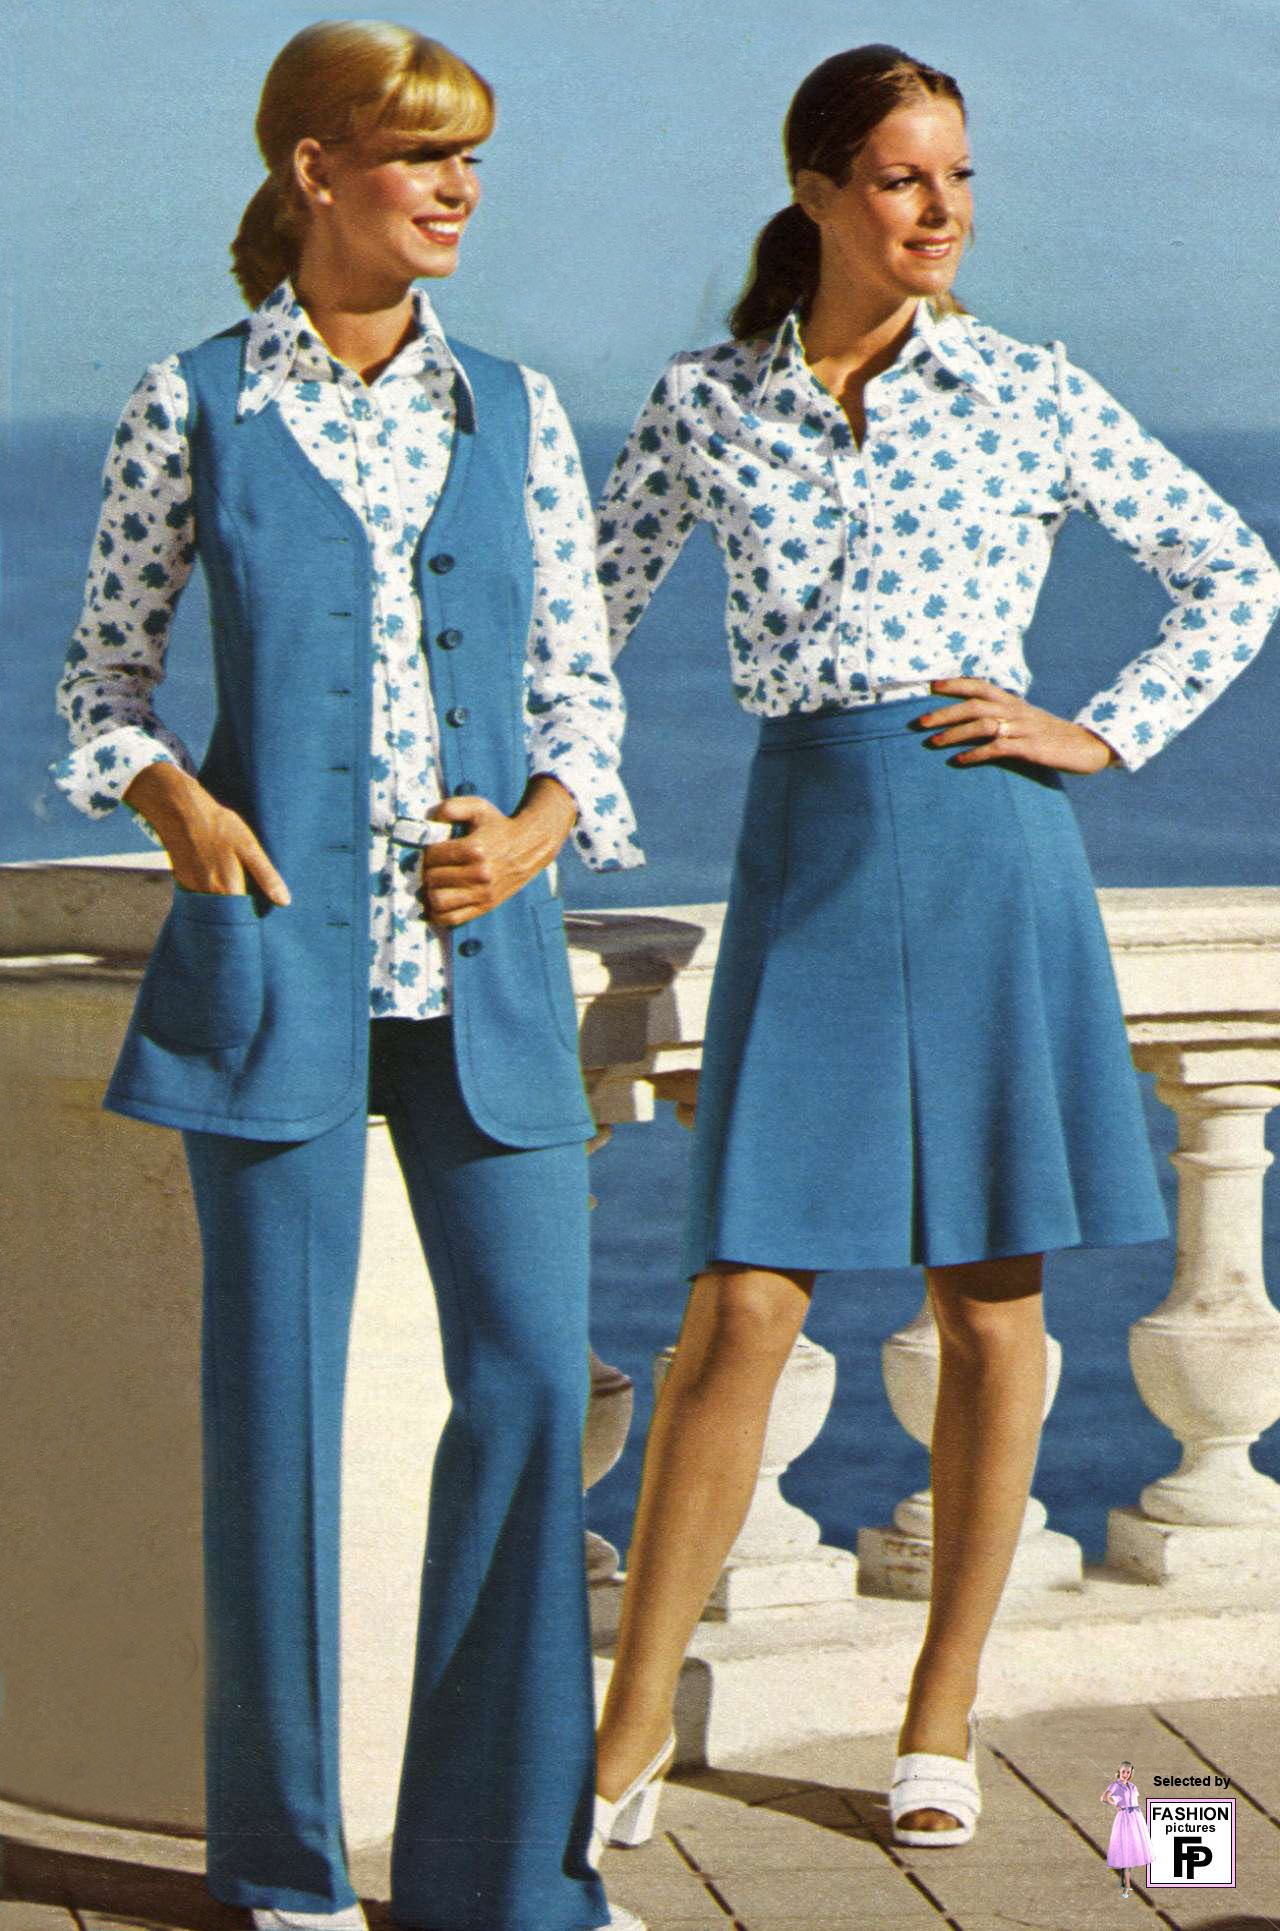 1970s Vintage Clothing 1973 Cool Clothing For Cool People Every Month Cooluxey Curates The Best Fashion Piece 1970s Fashion 1970s Fashion Women Fashion